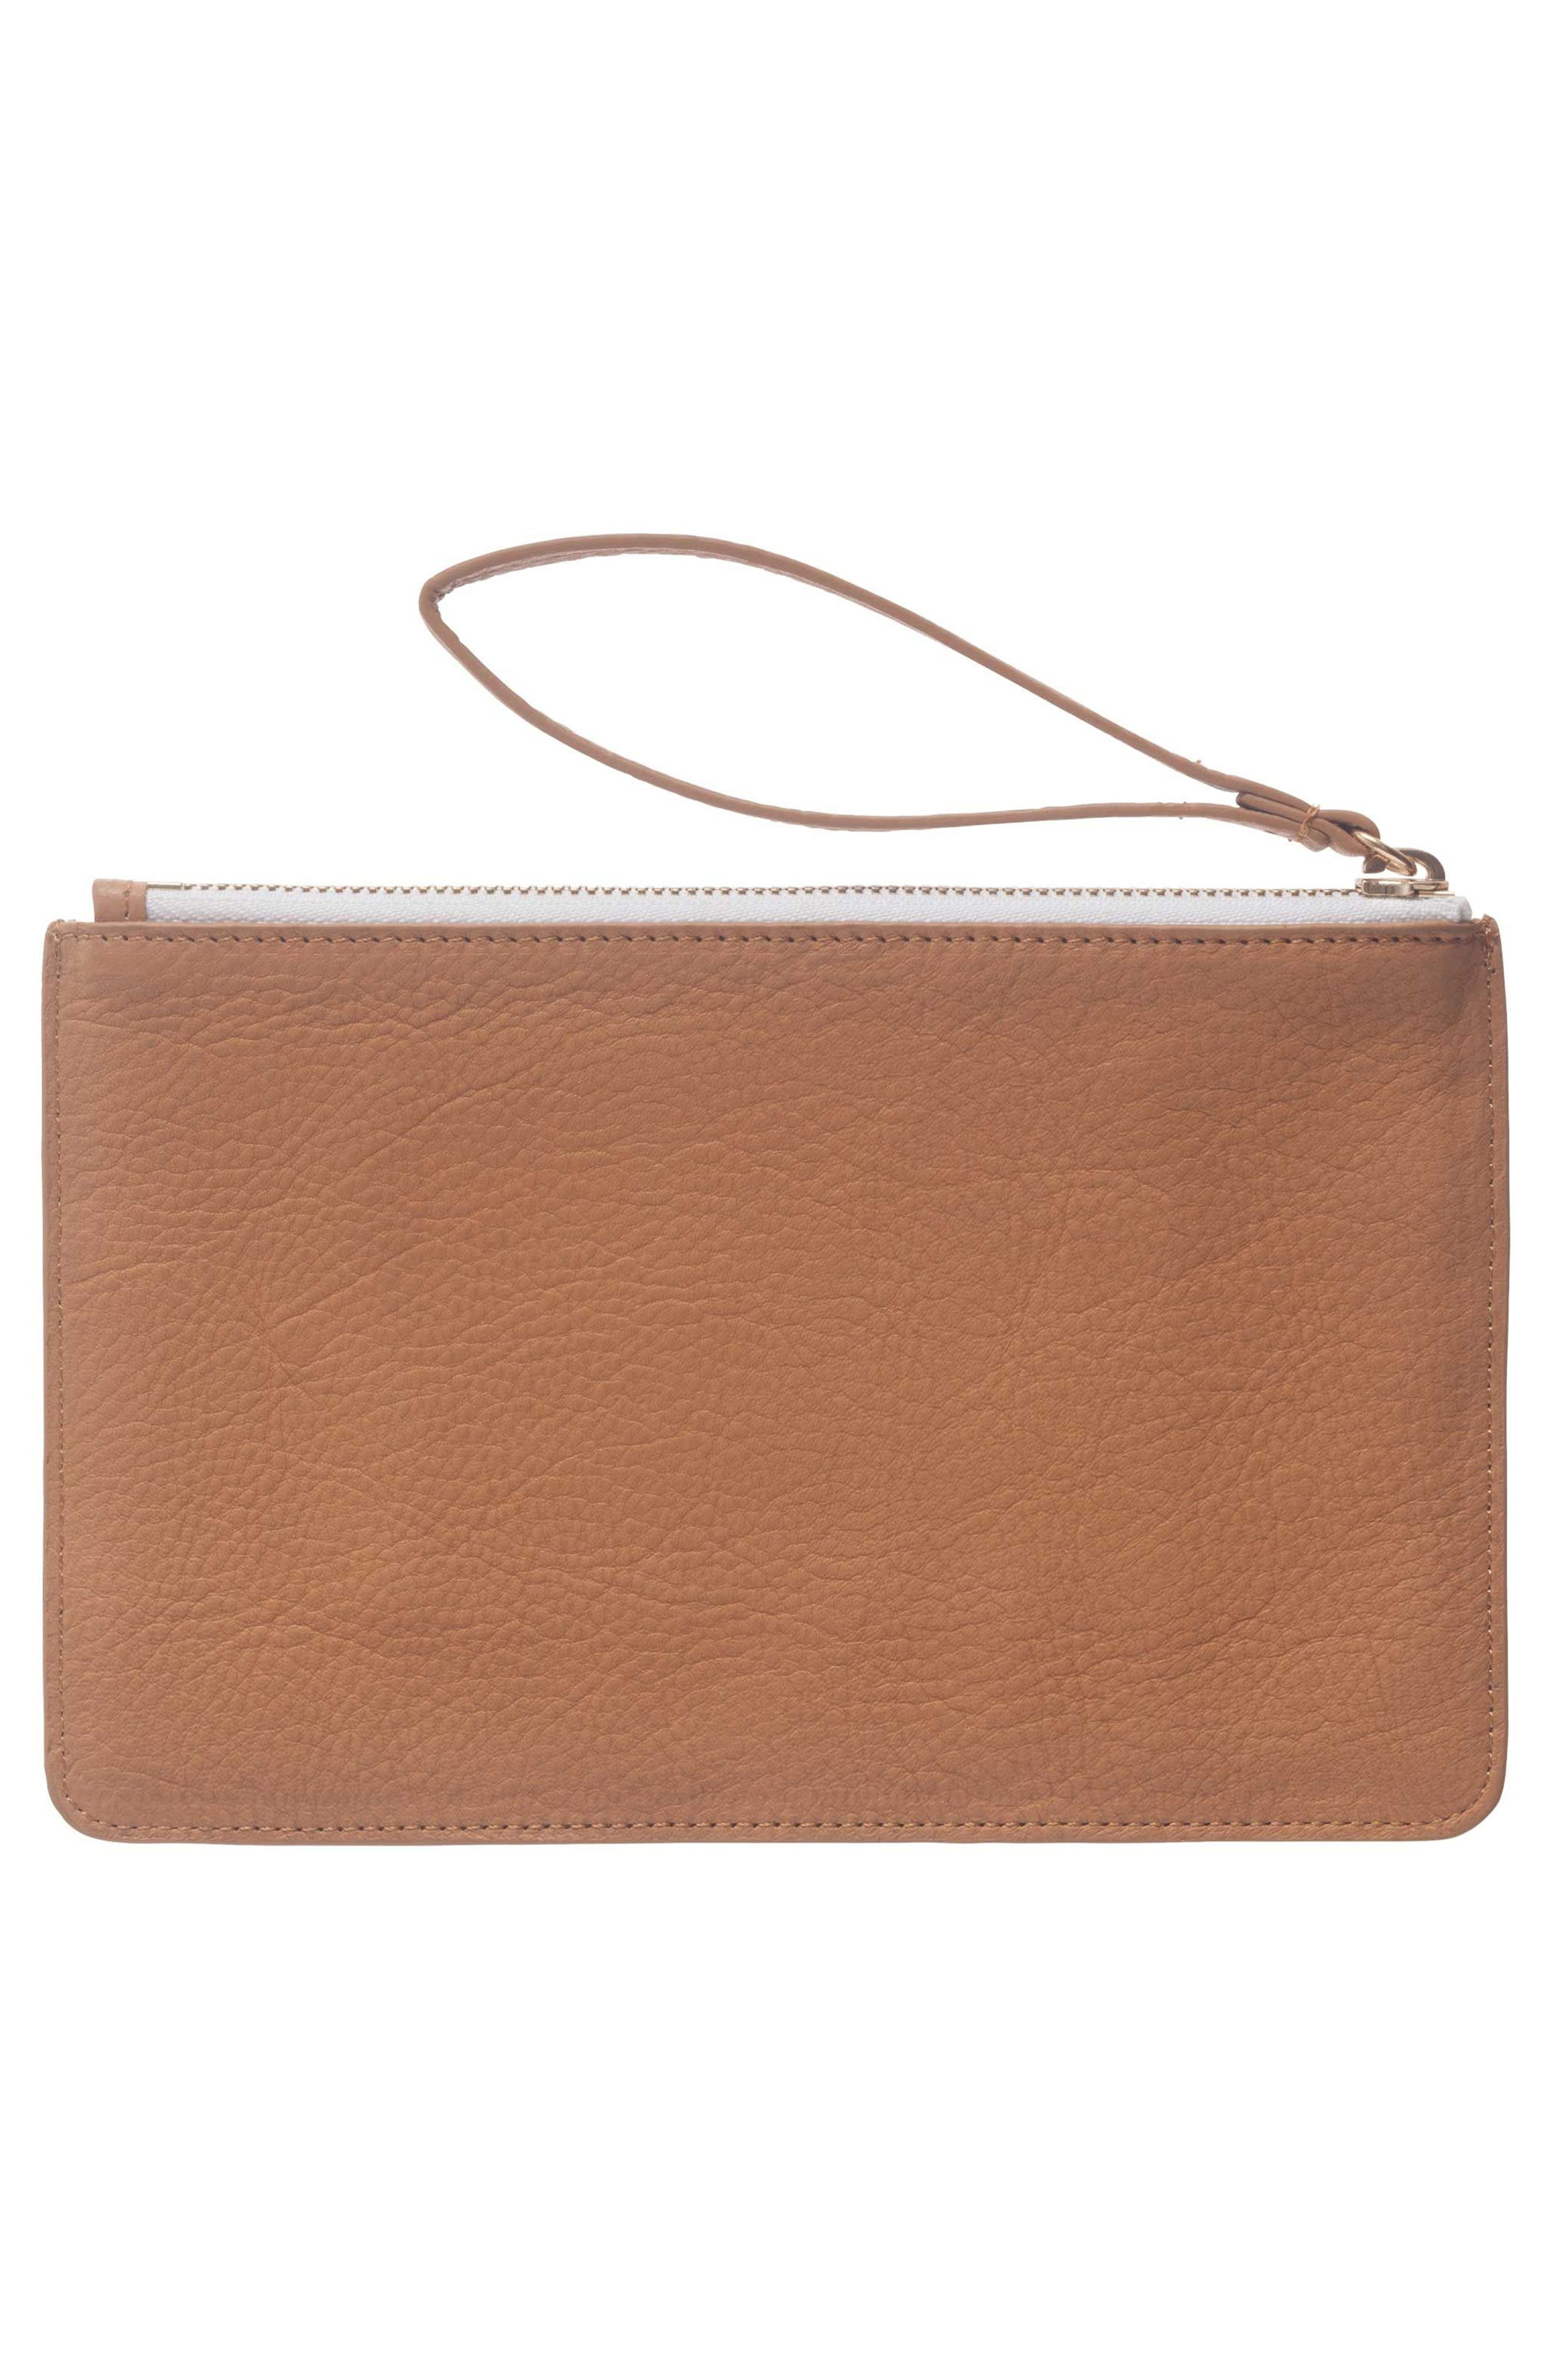 Privacy Leather Wristlet,                             Alternate thumbnail 3, color,                             Caramel